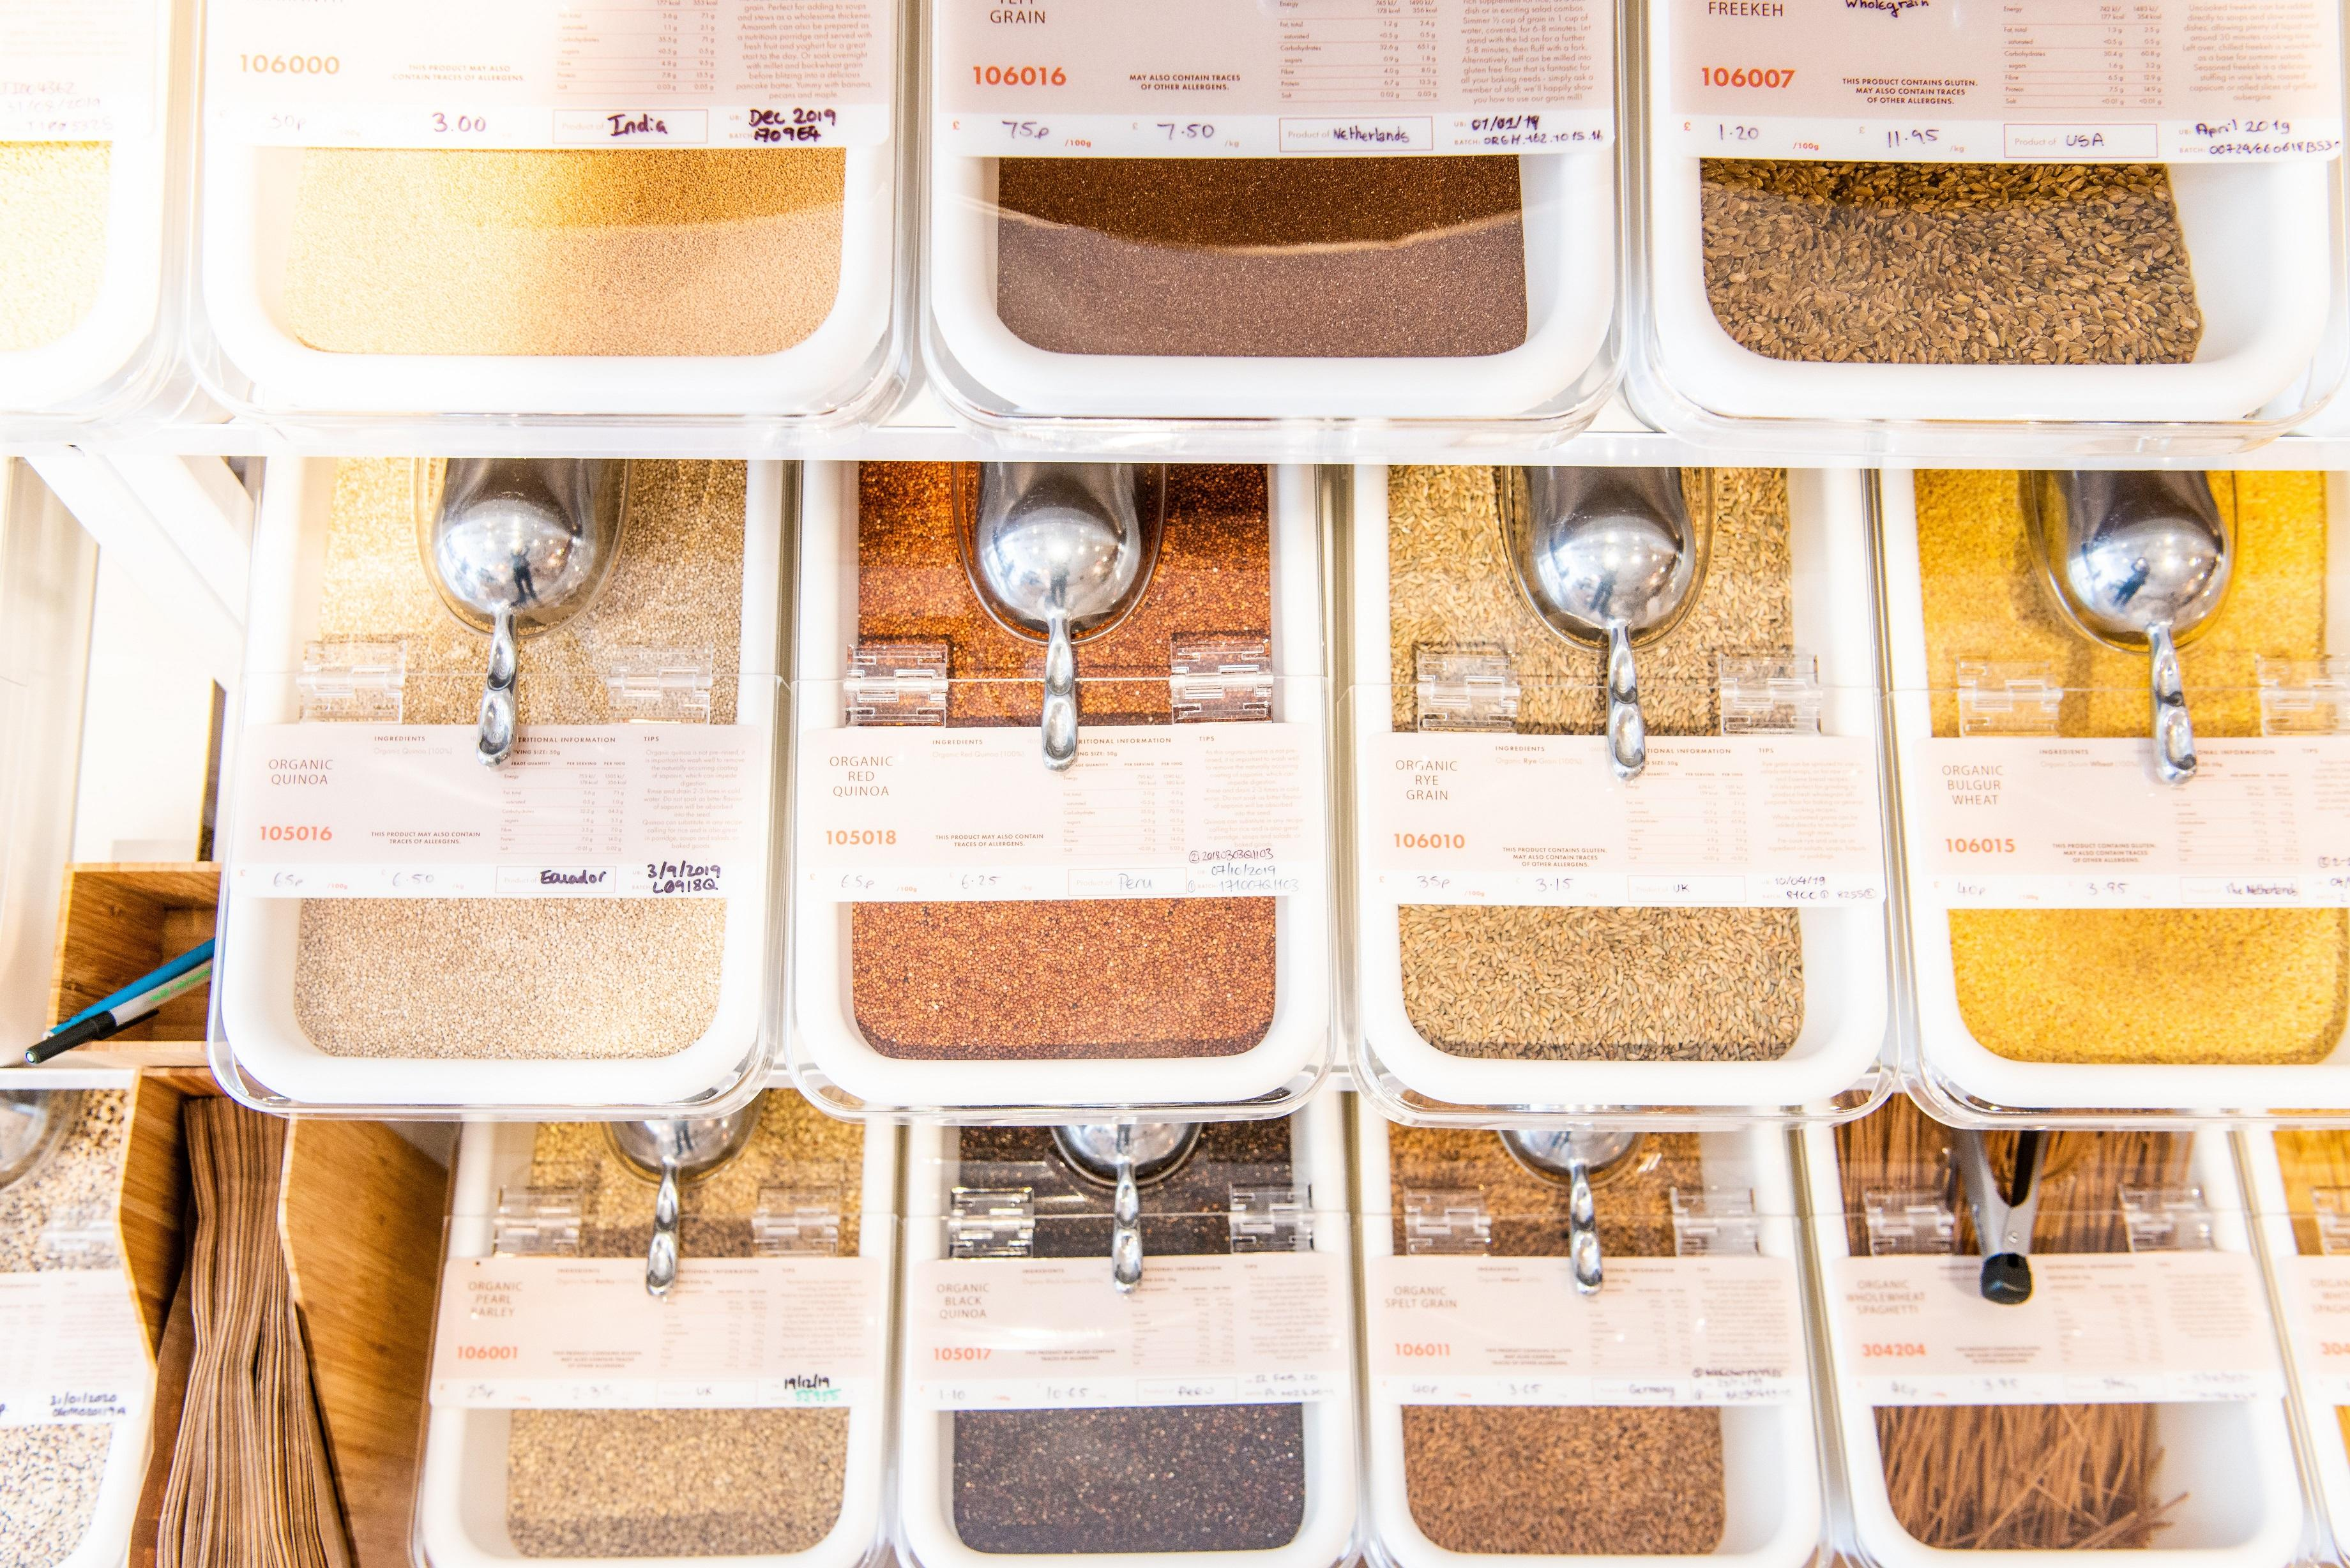 Zero Waste Loose Grain and Spices Refill Station at The Source Bulk Foods Store